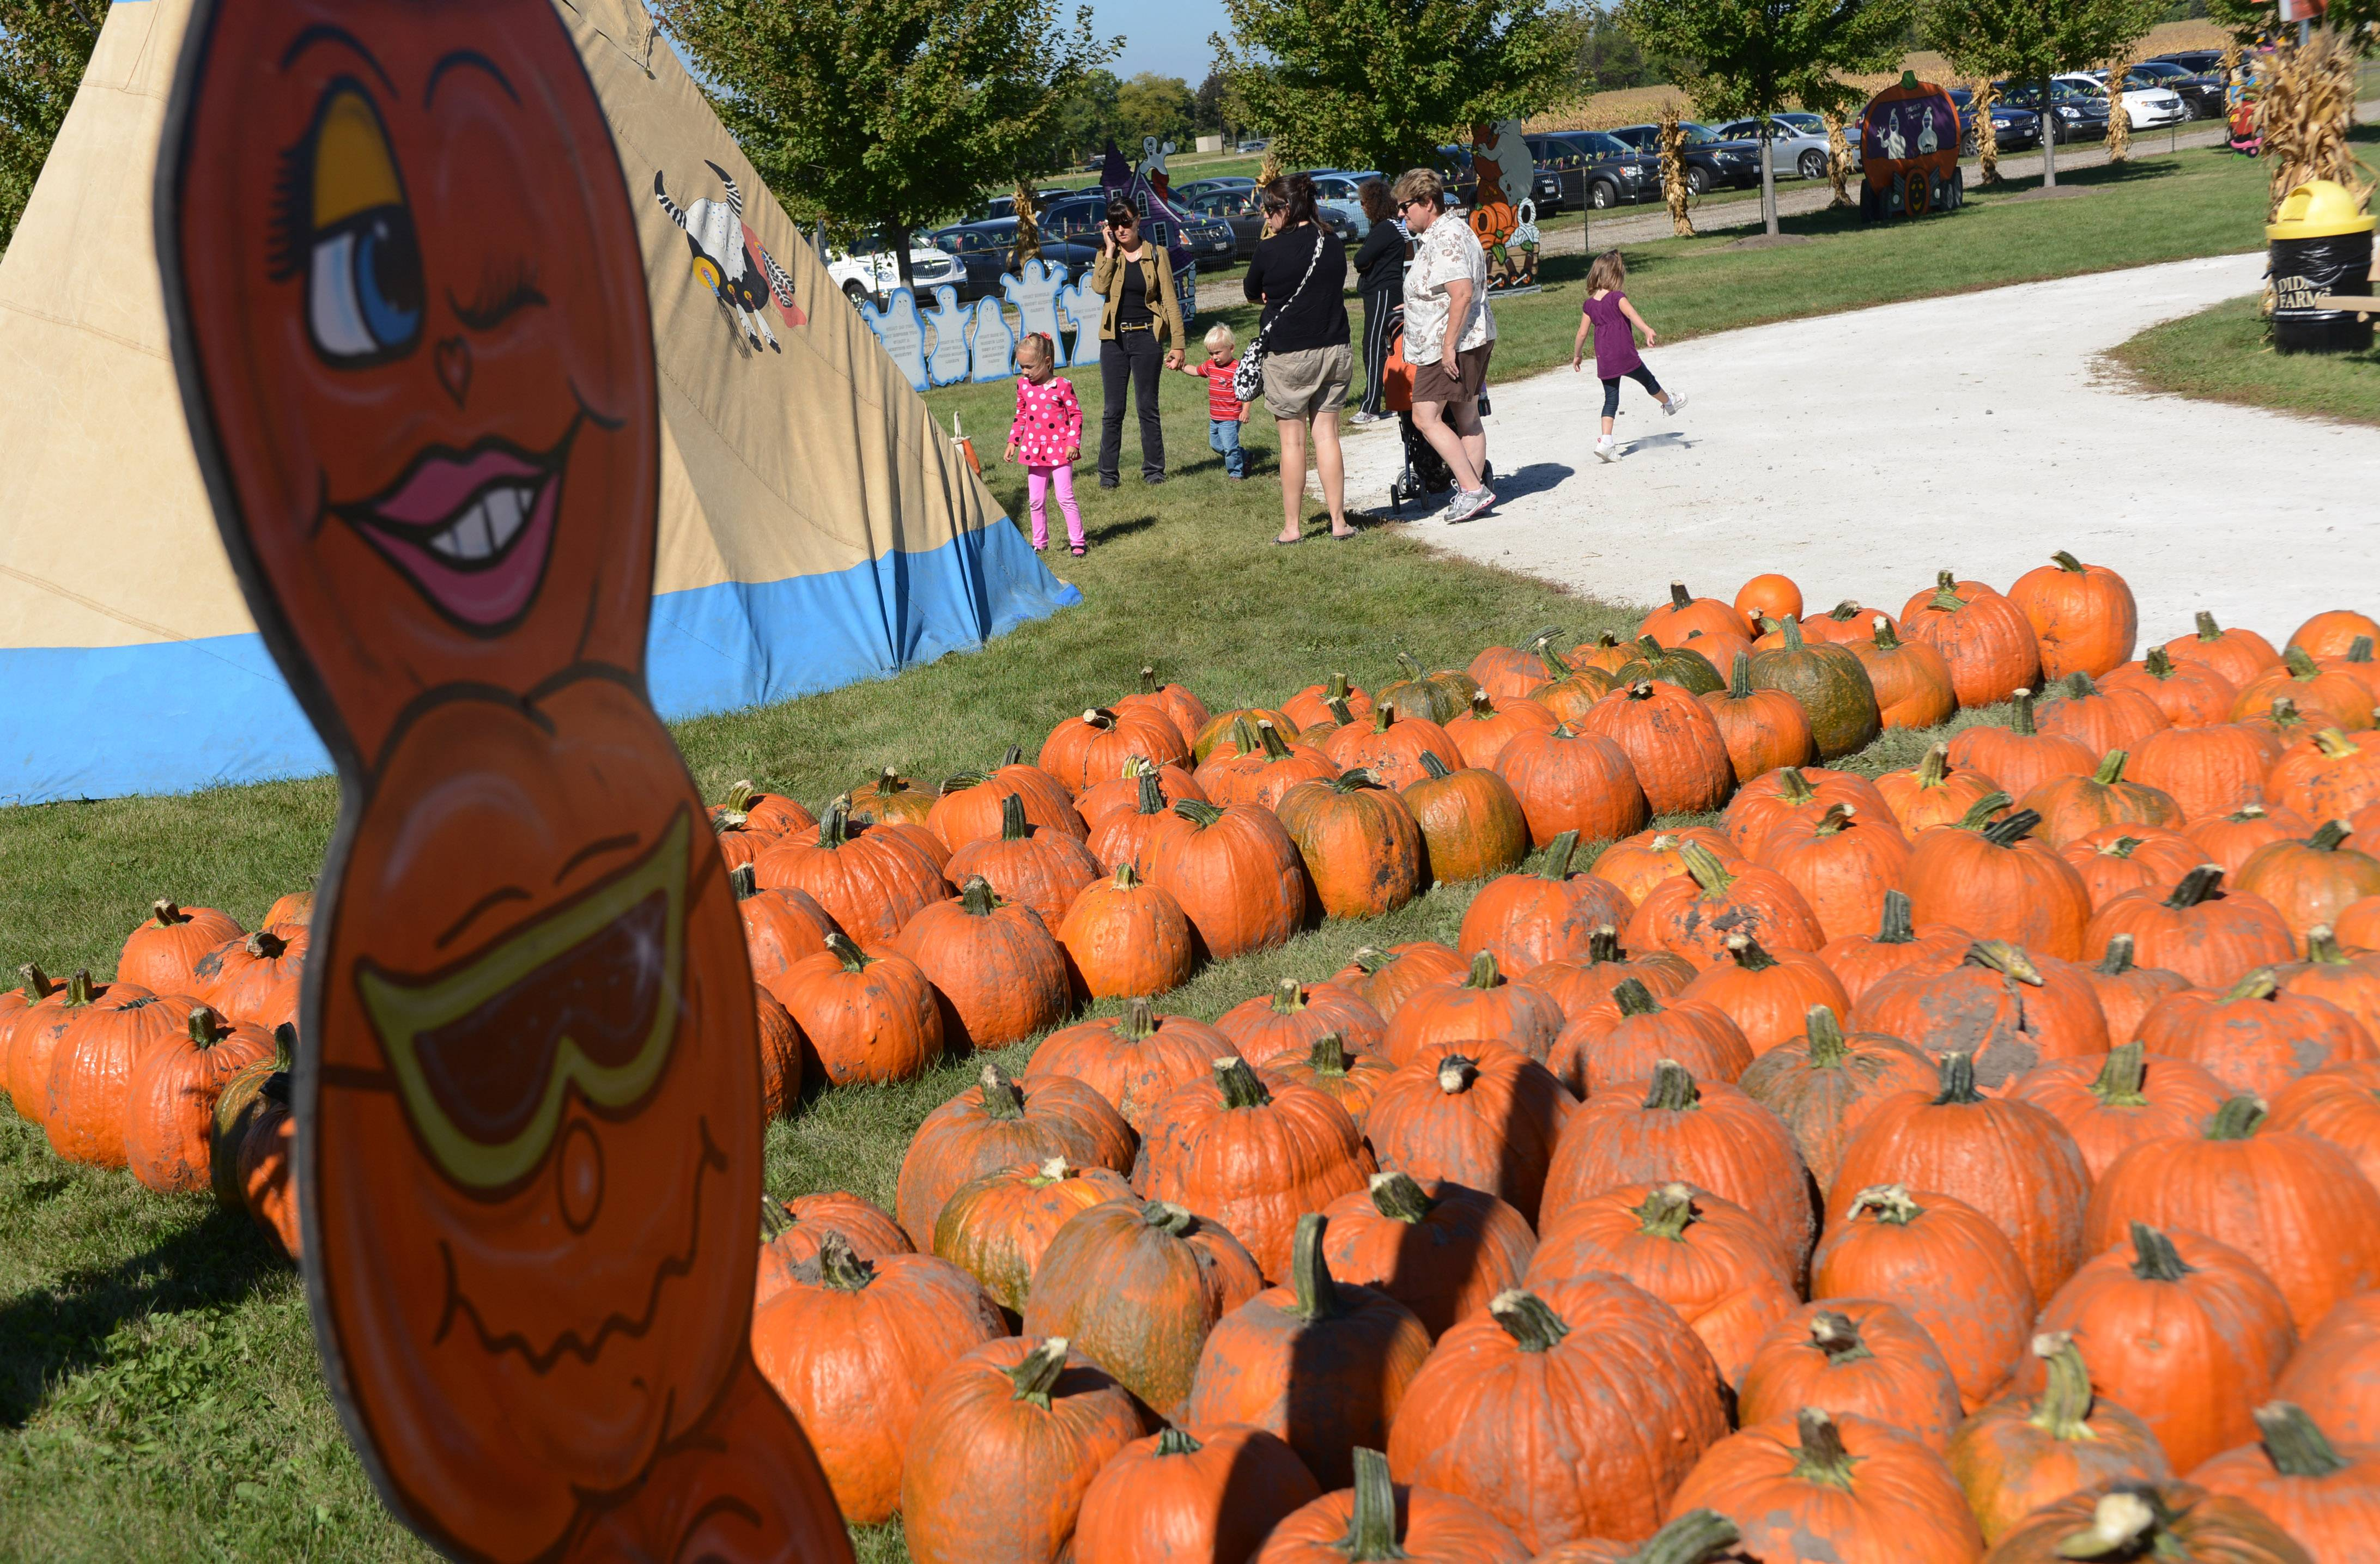 Pumpkins are ready for visitors to Didier Farms in Lincolnshire. Environmental organization SCARCE is campaigning for people to drop off pumpkins for composting after Halloween.